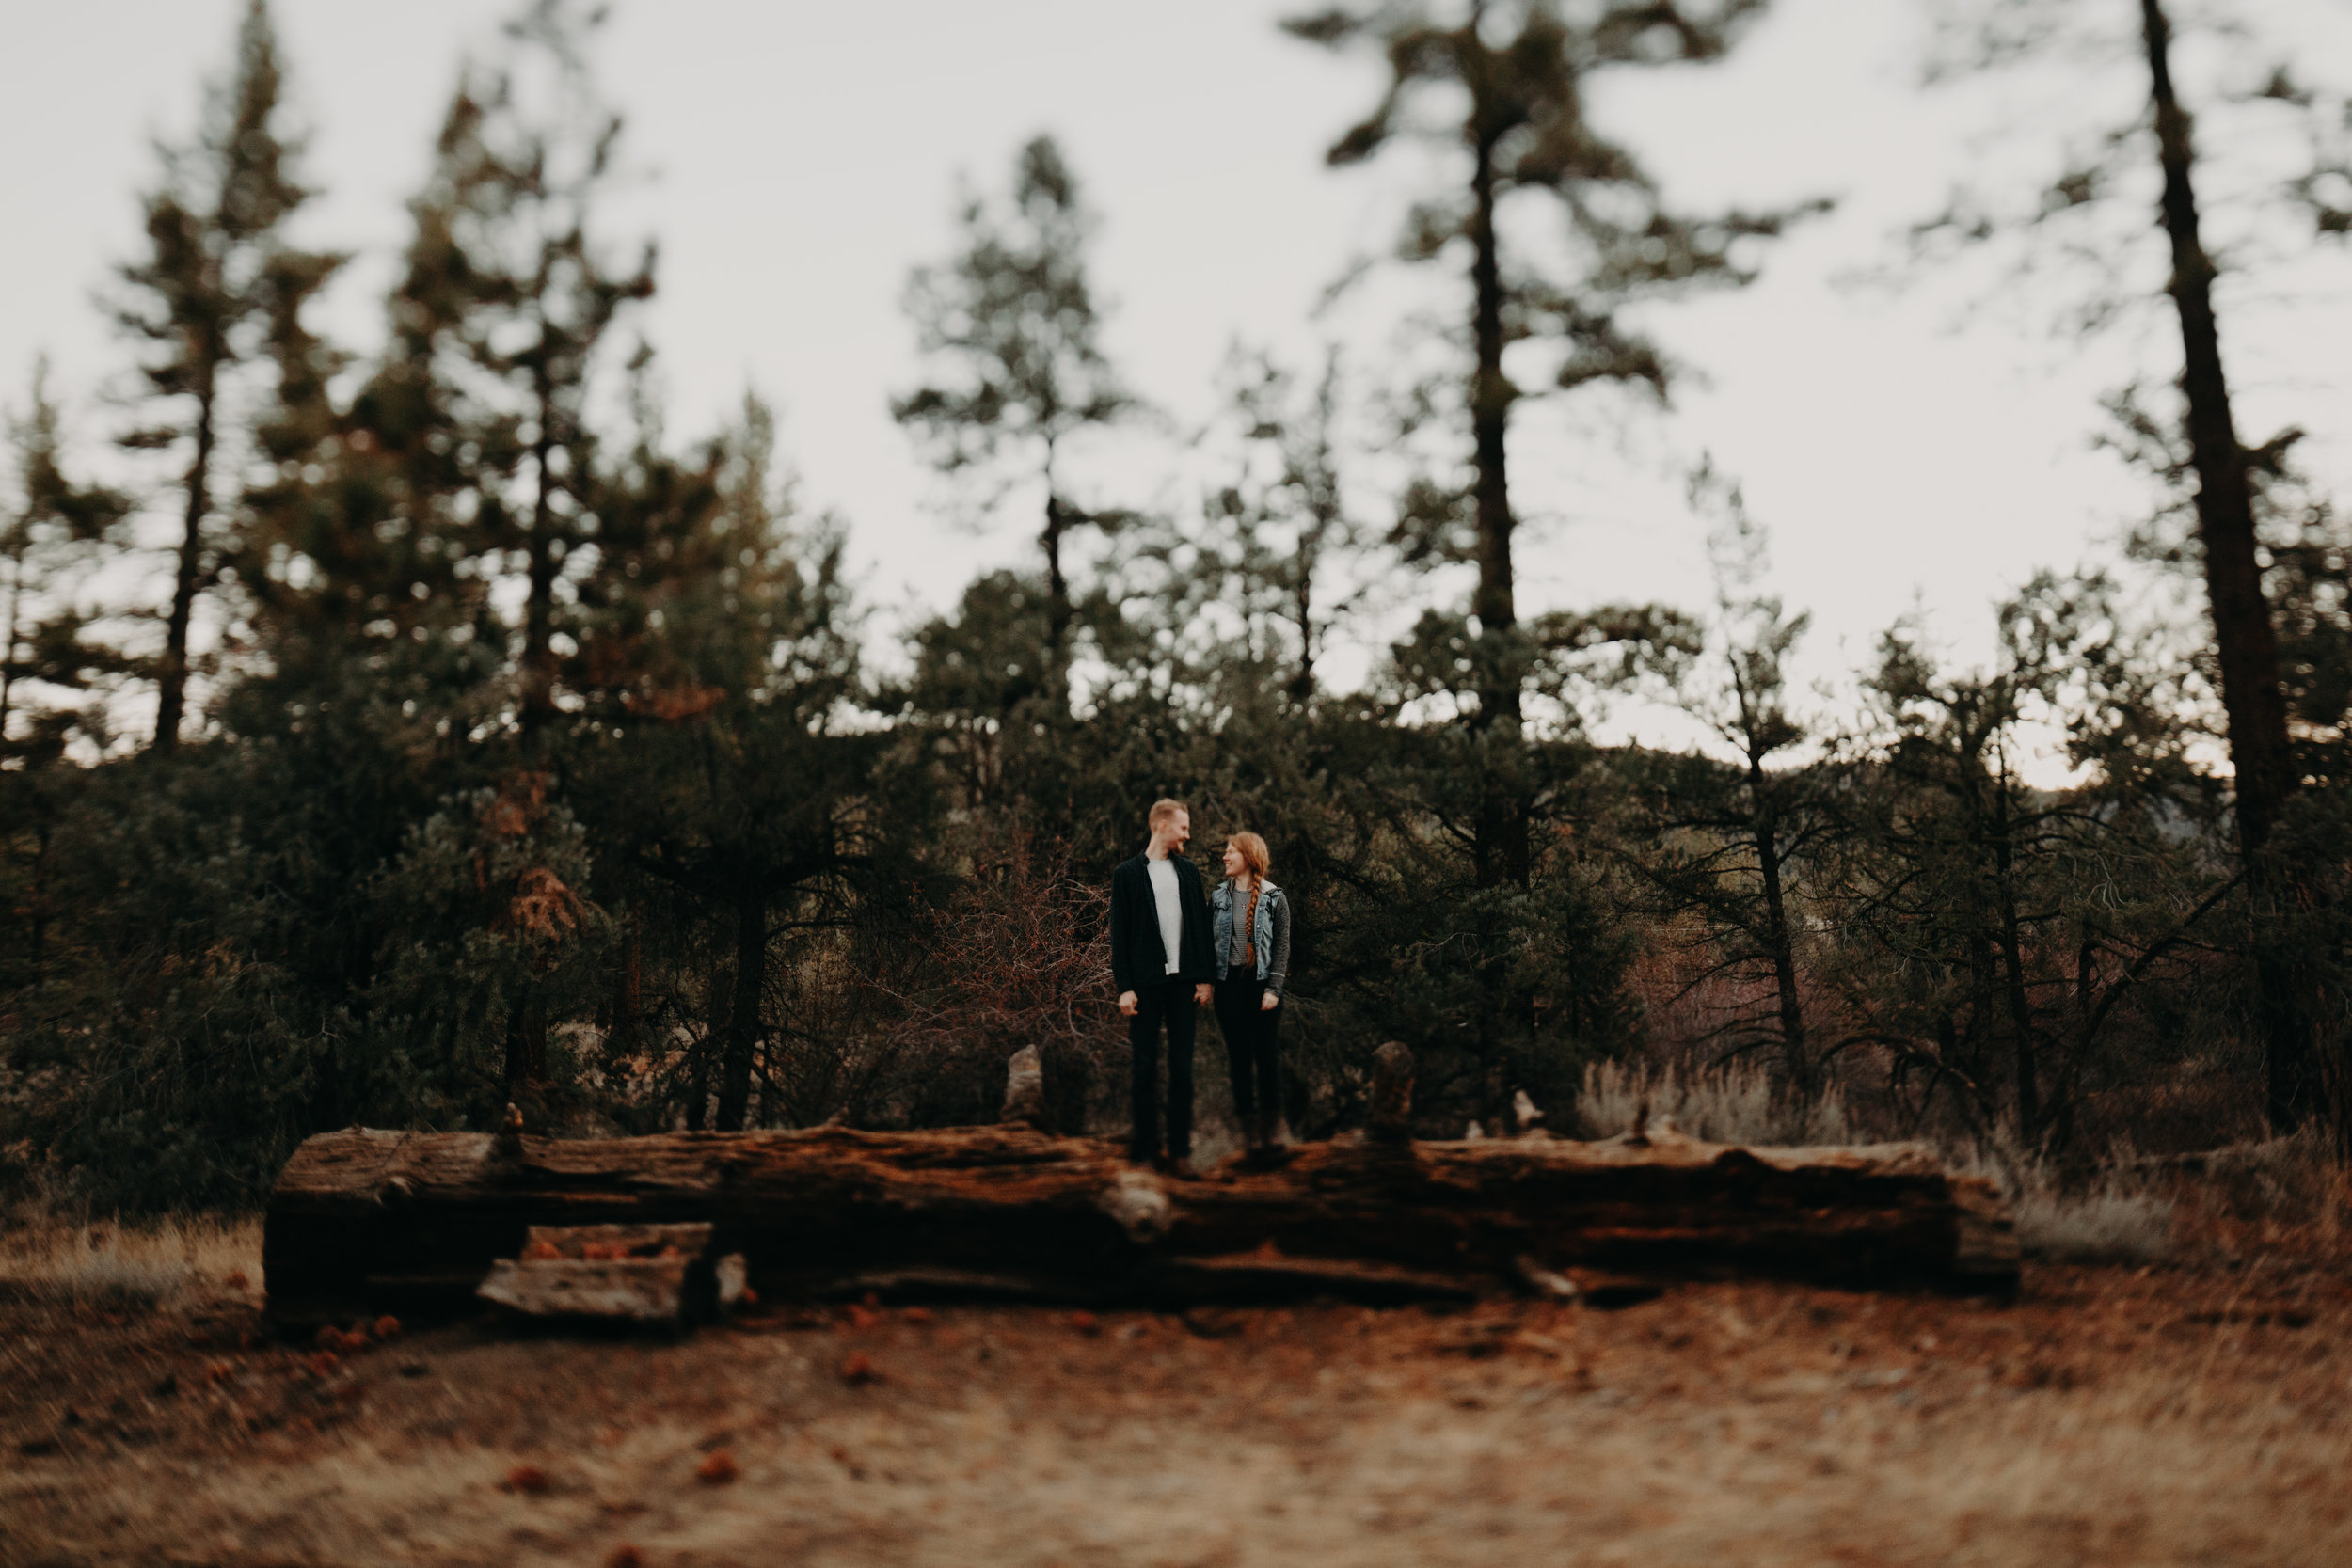 Mt Pinos Anniversary Session Grace & Brandon Emily Magers Photography-25.jpg